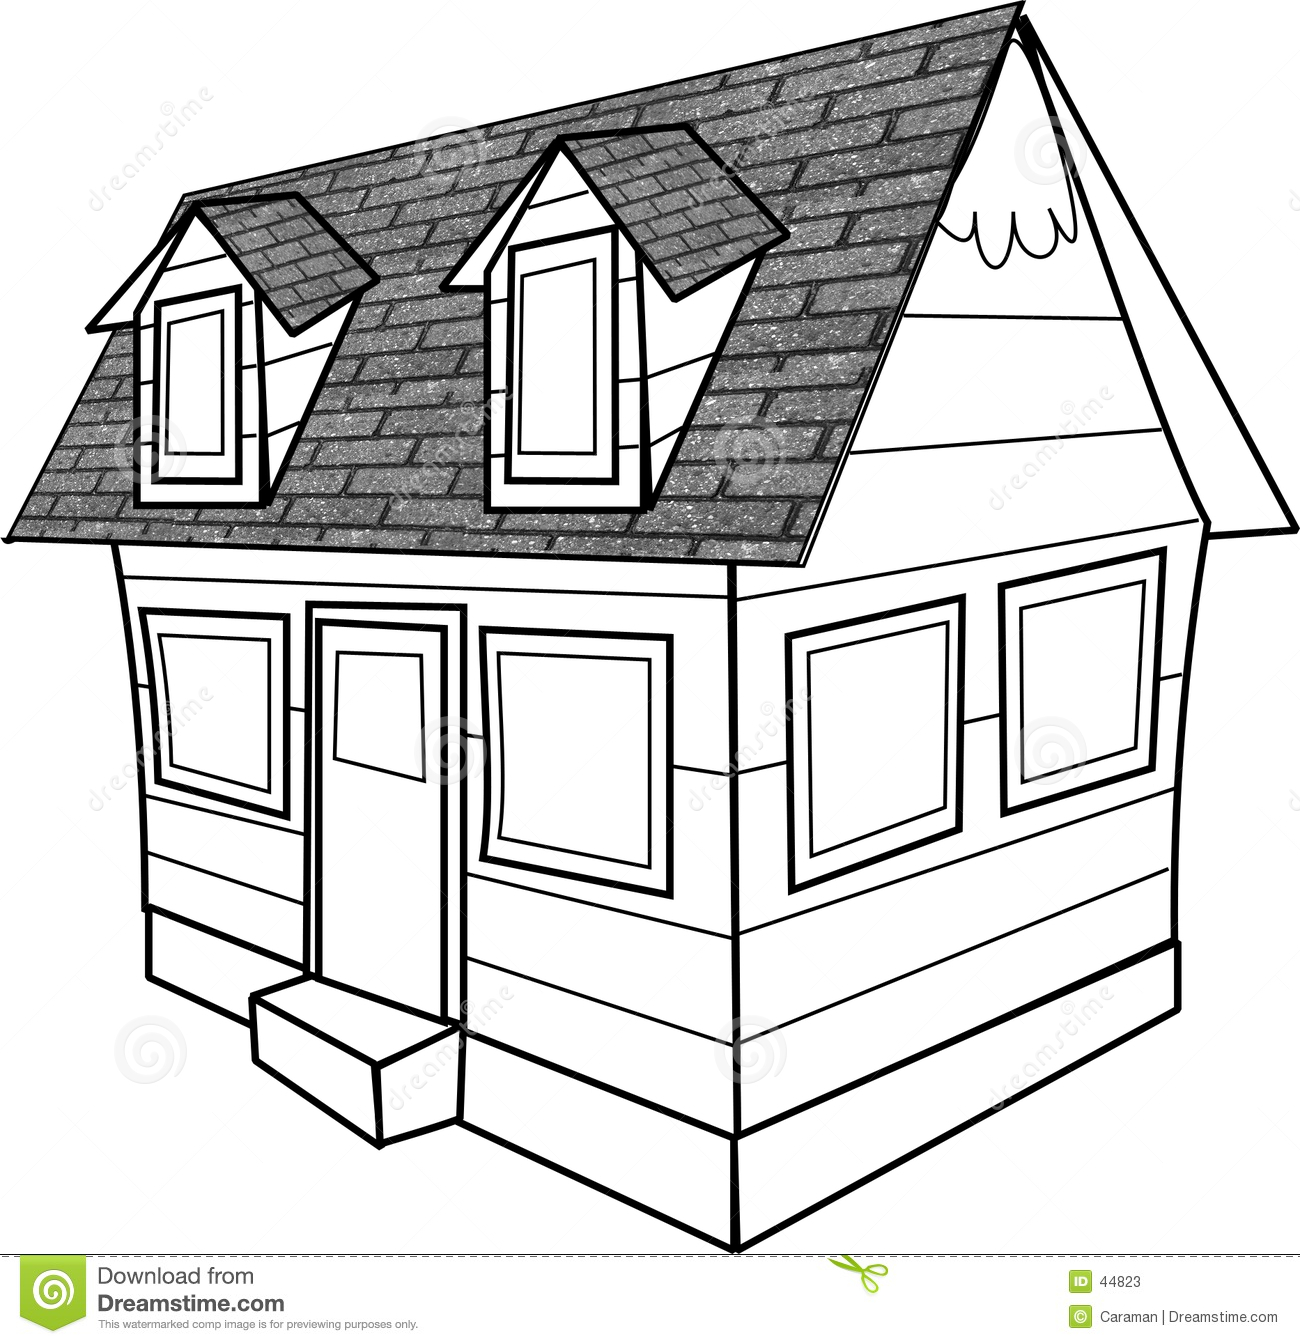 Dessin au trait d 39 une maison photos stock image 44823 for Une maison dessin